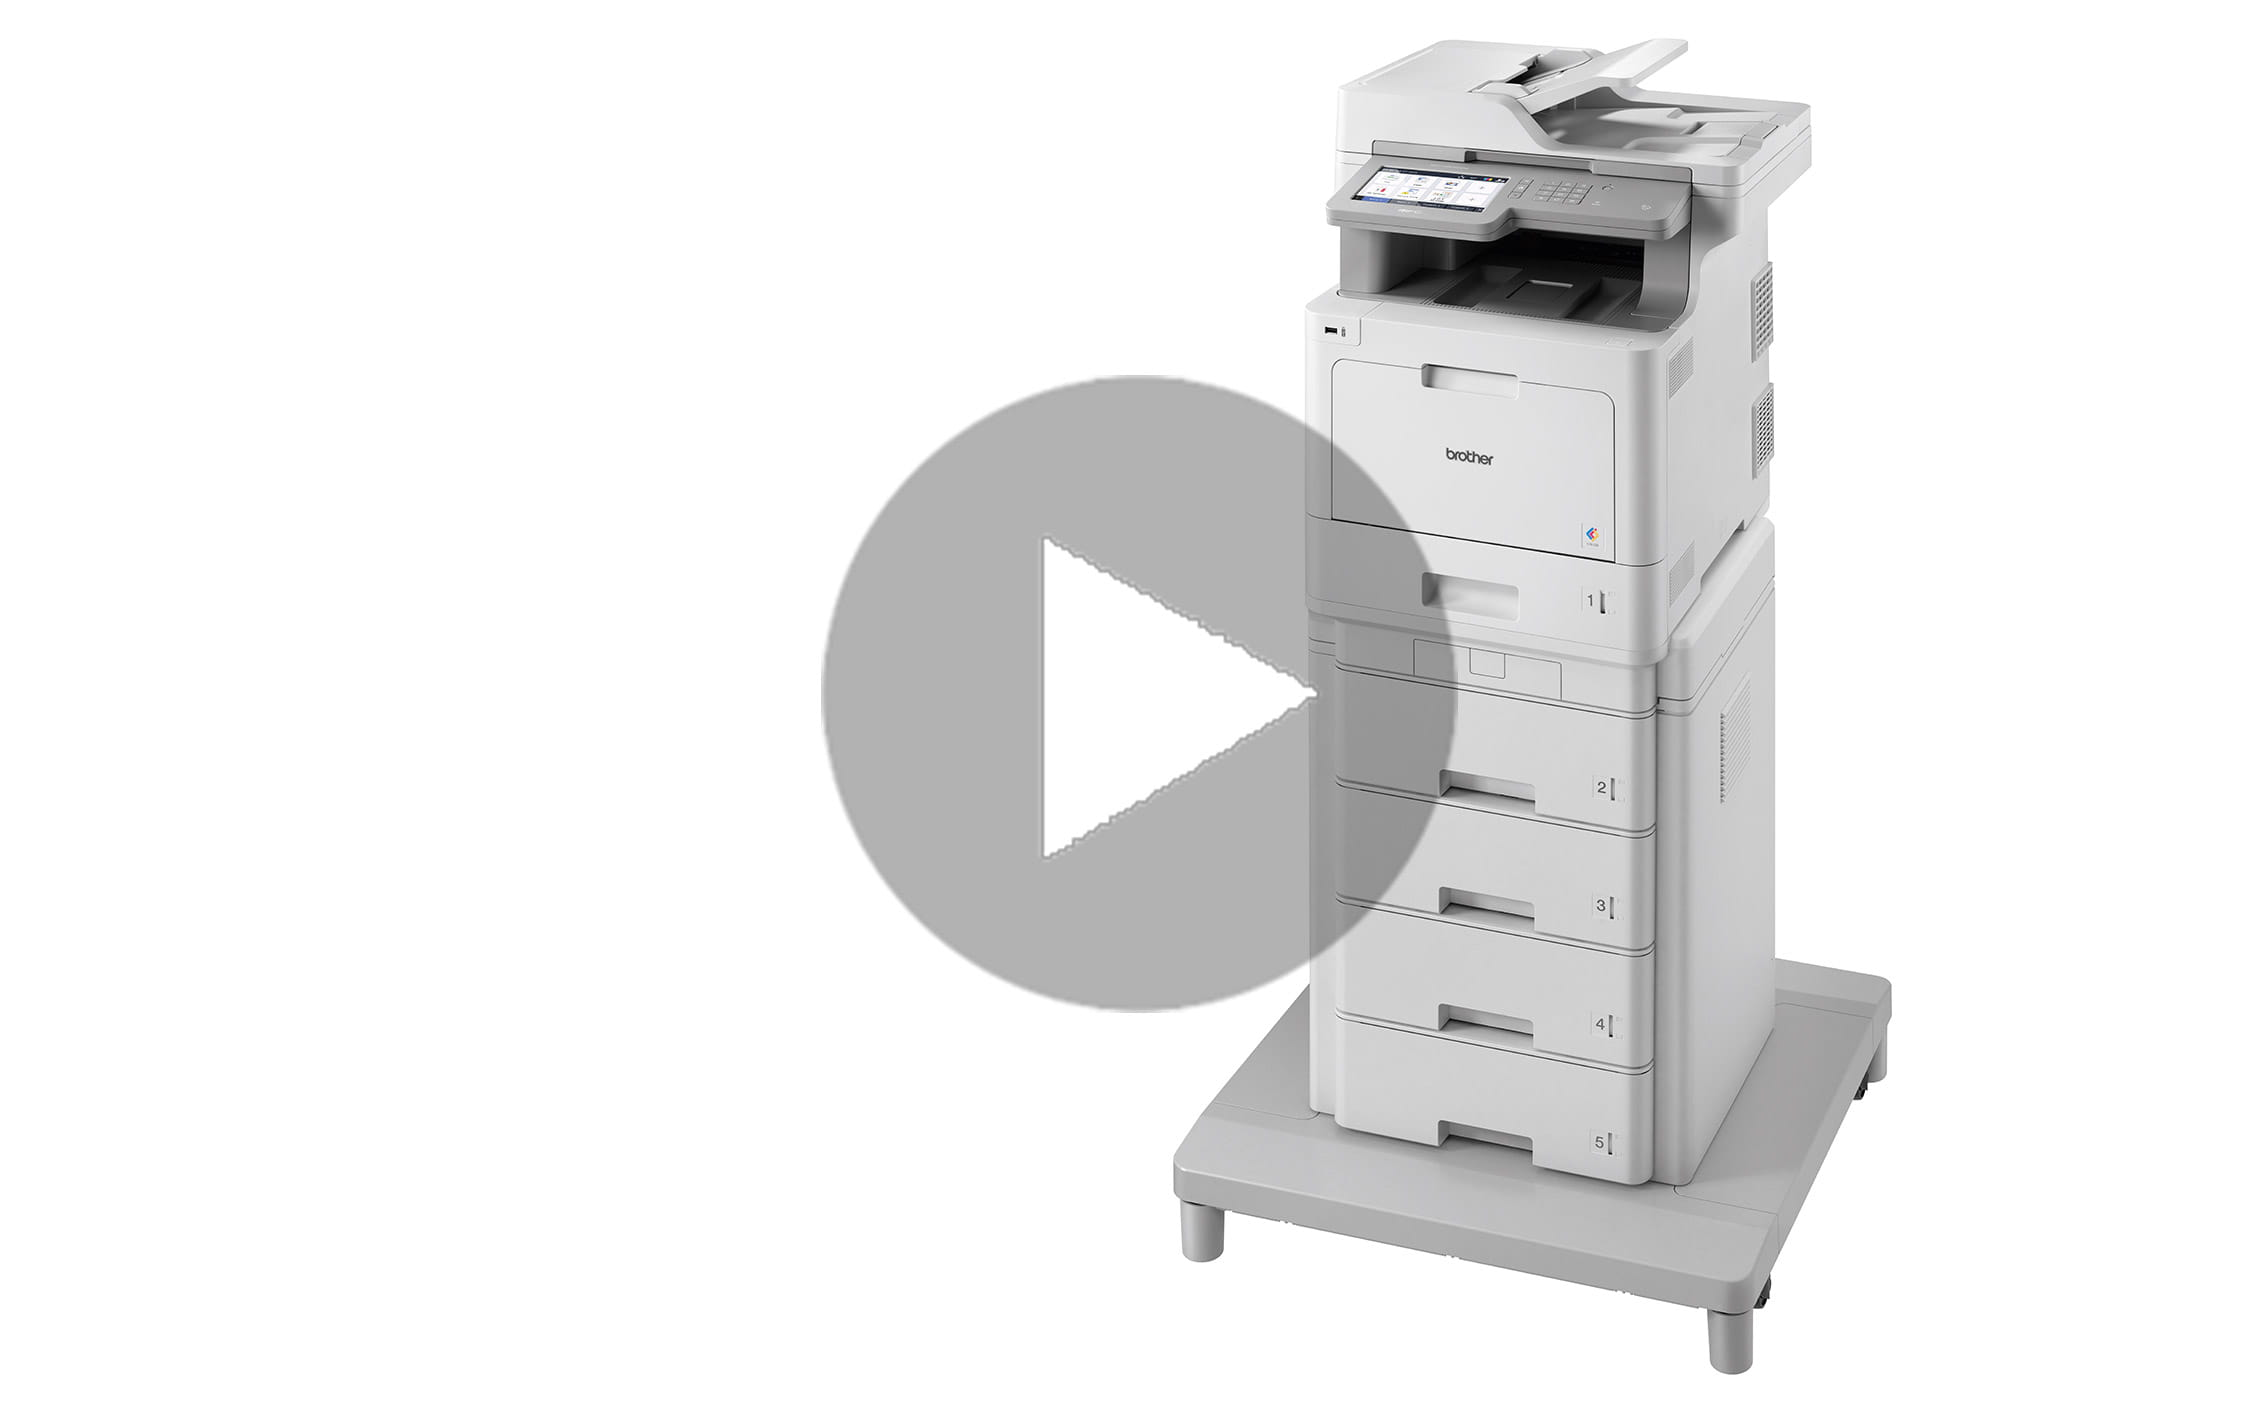 MFC-L9570CDWMT Professionele all-in-one kleurenlaserprinter met vijf papierladen en NFC 7